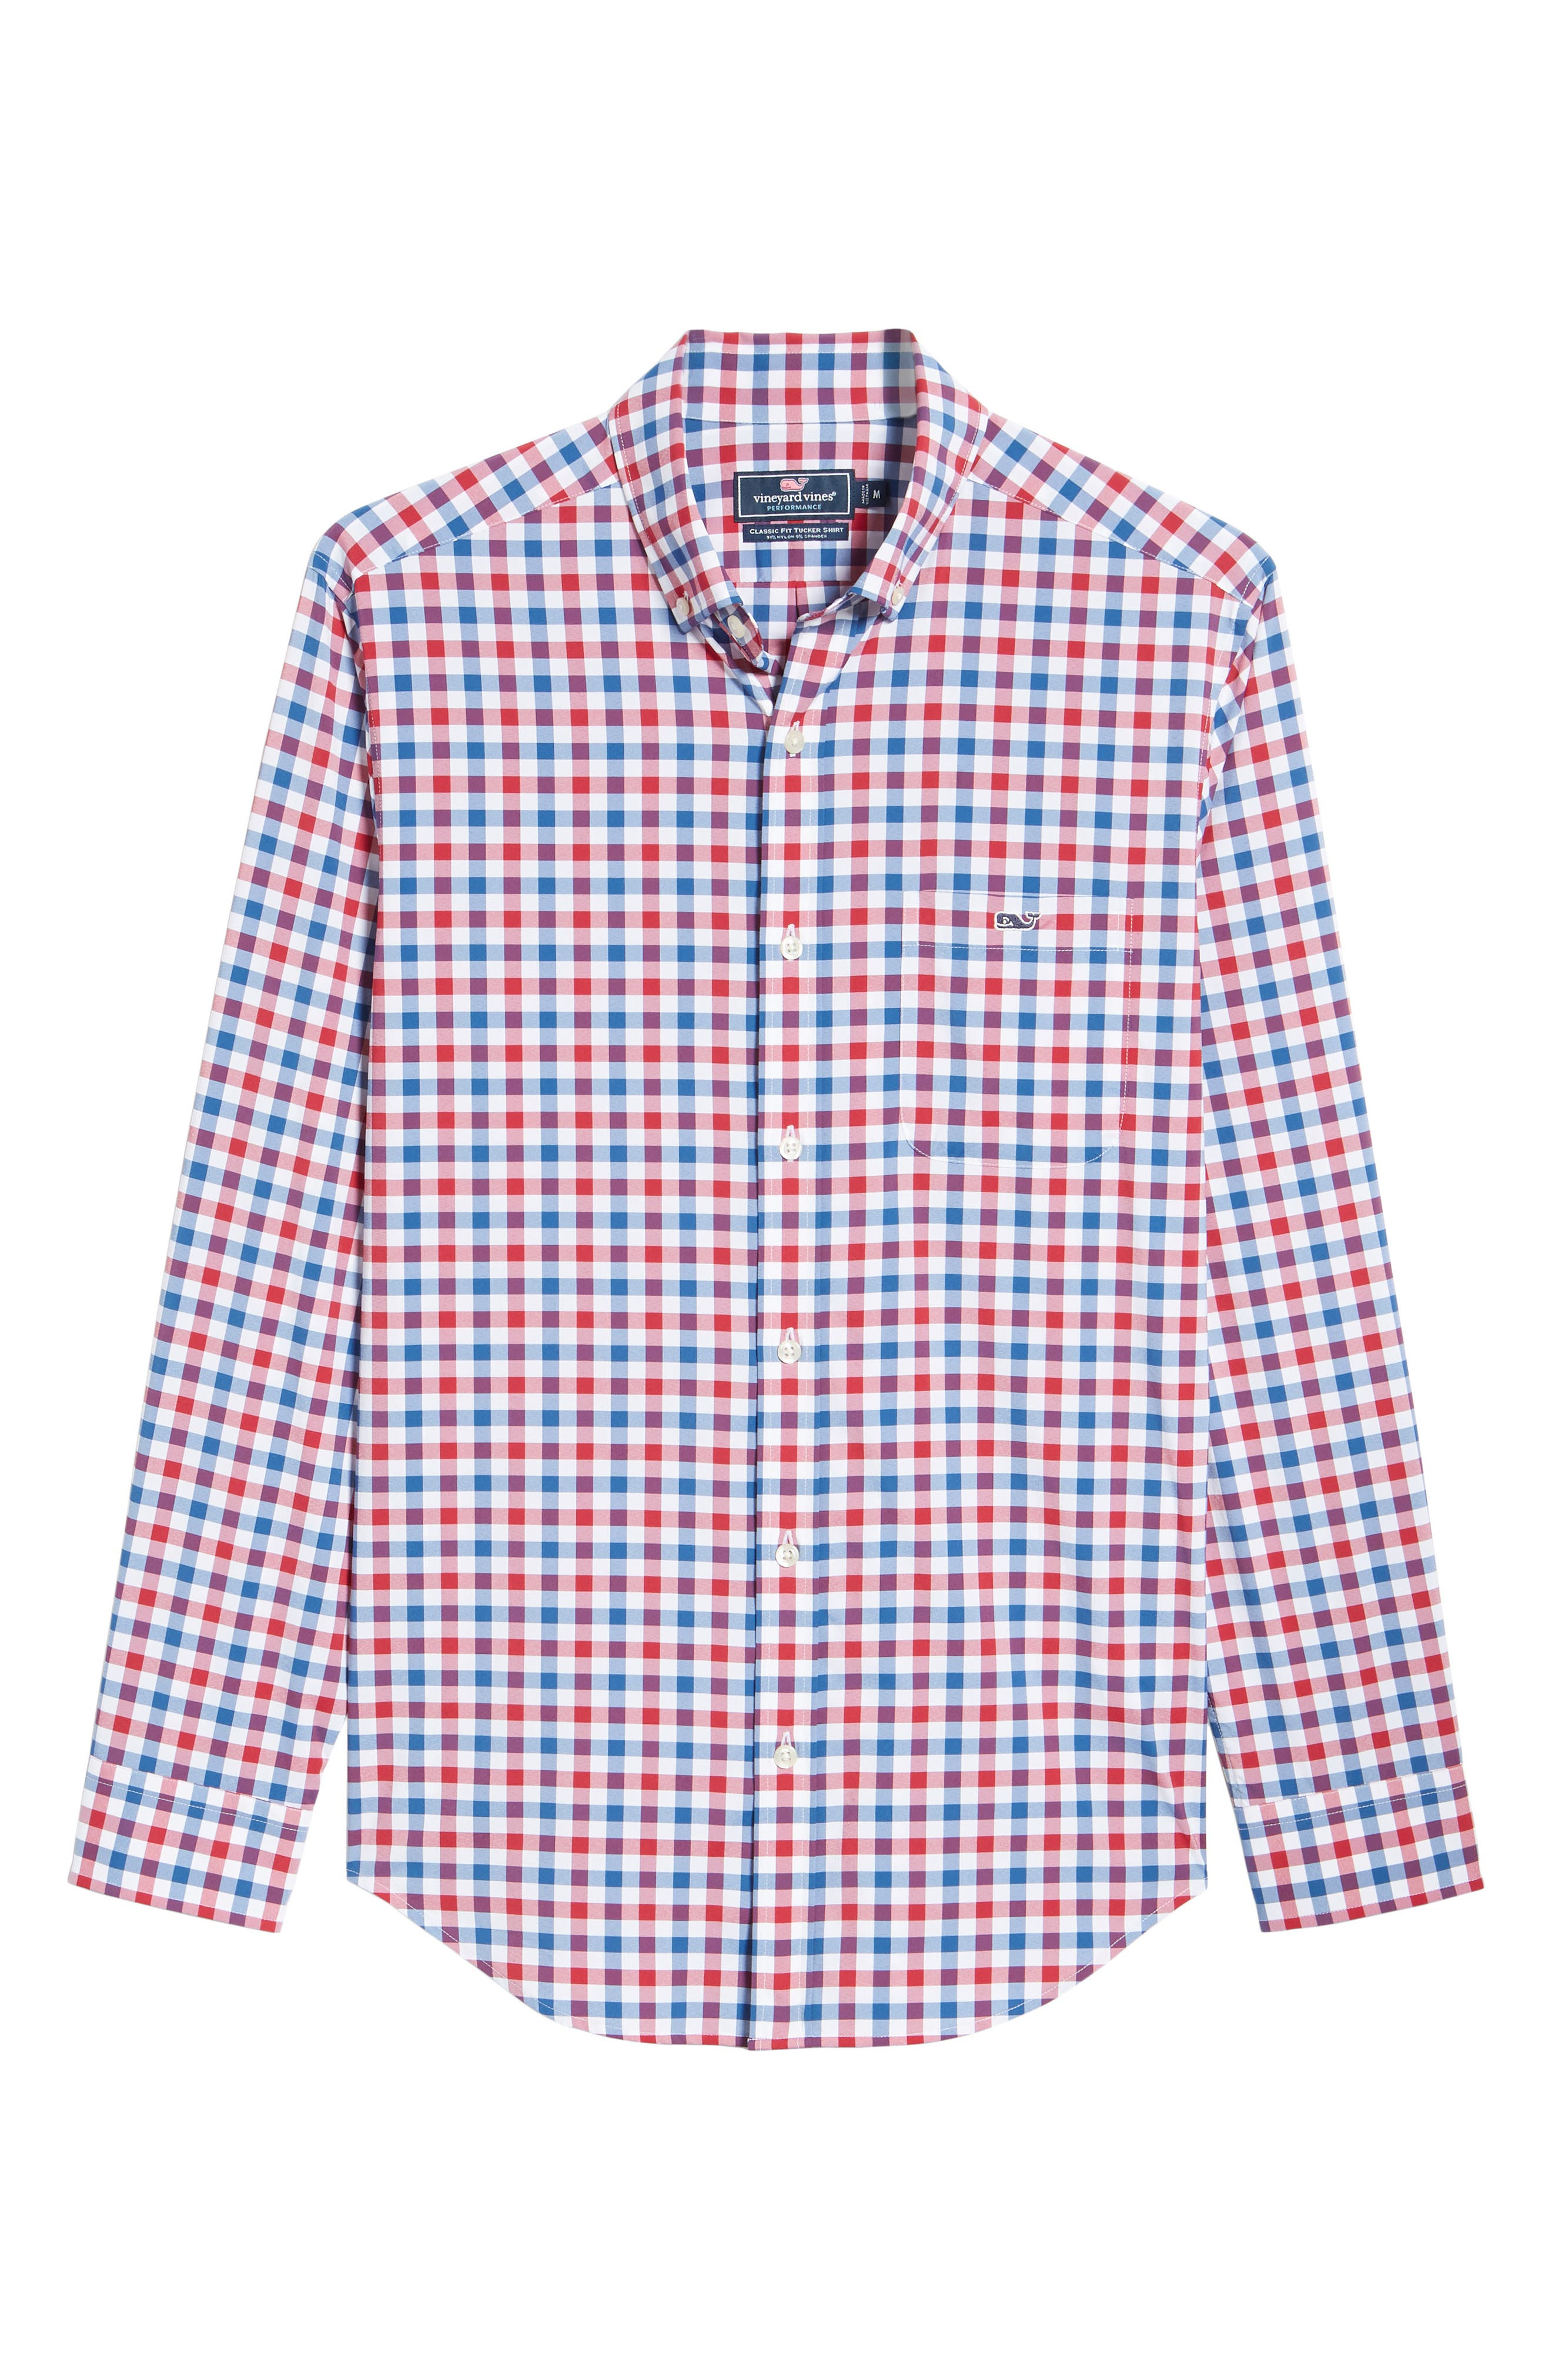 Gull Island Classic Fit Gingham Sport Shirt,                             Alternate thumbnail 6, color,                             Captains Blue